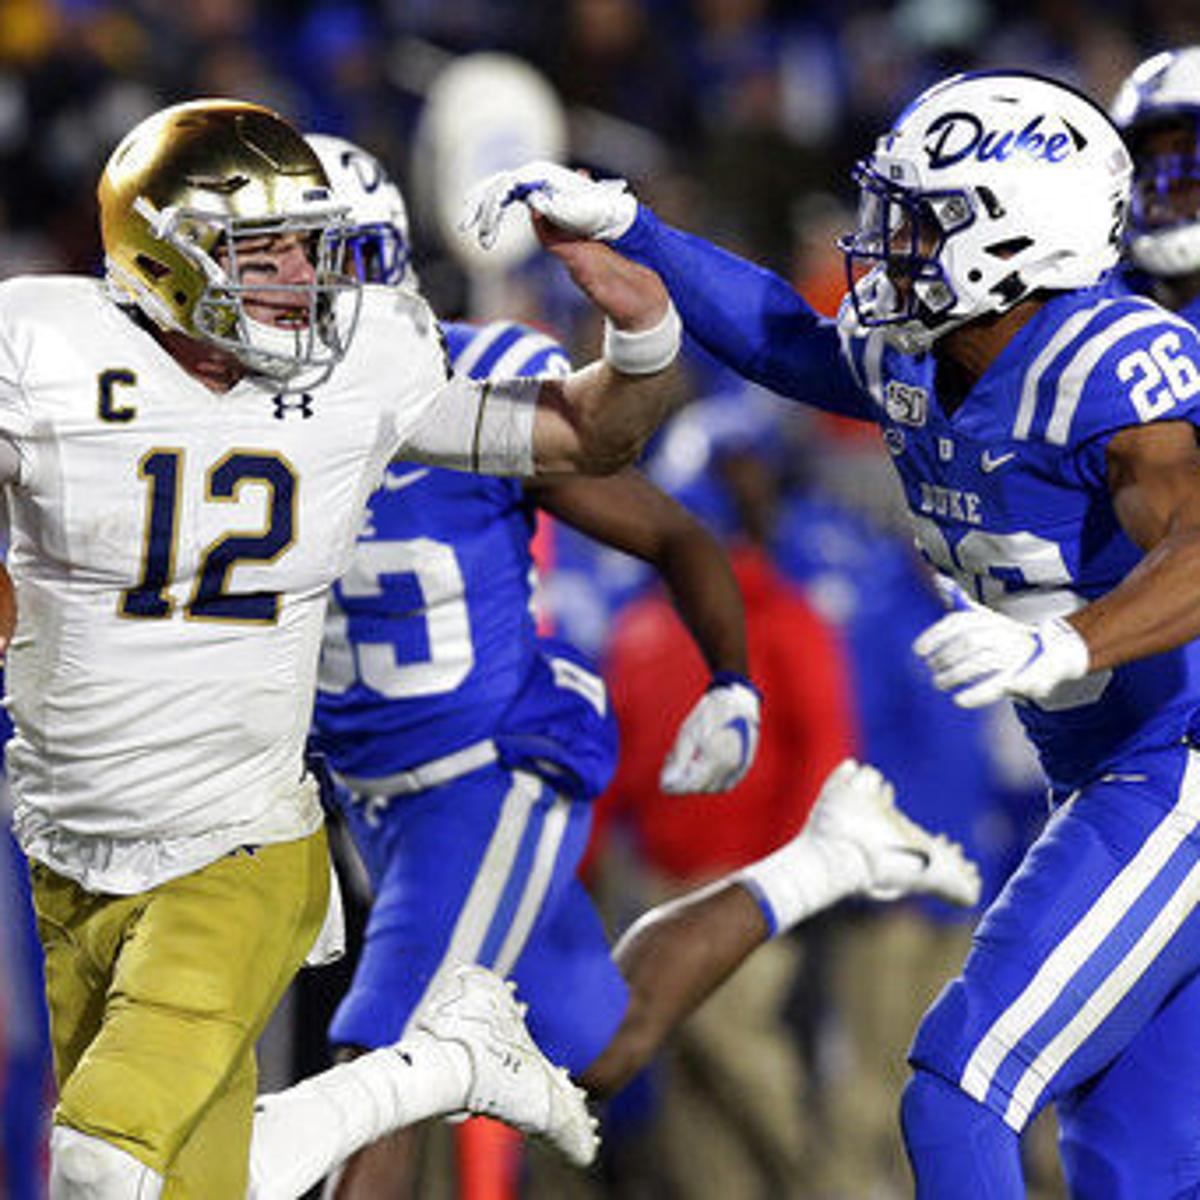 Notre Dame To Play For Acc Championship Share Nbc Revenue In 2020 Sports Nwitimes Com